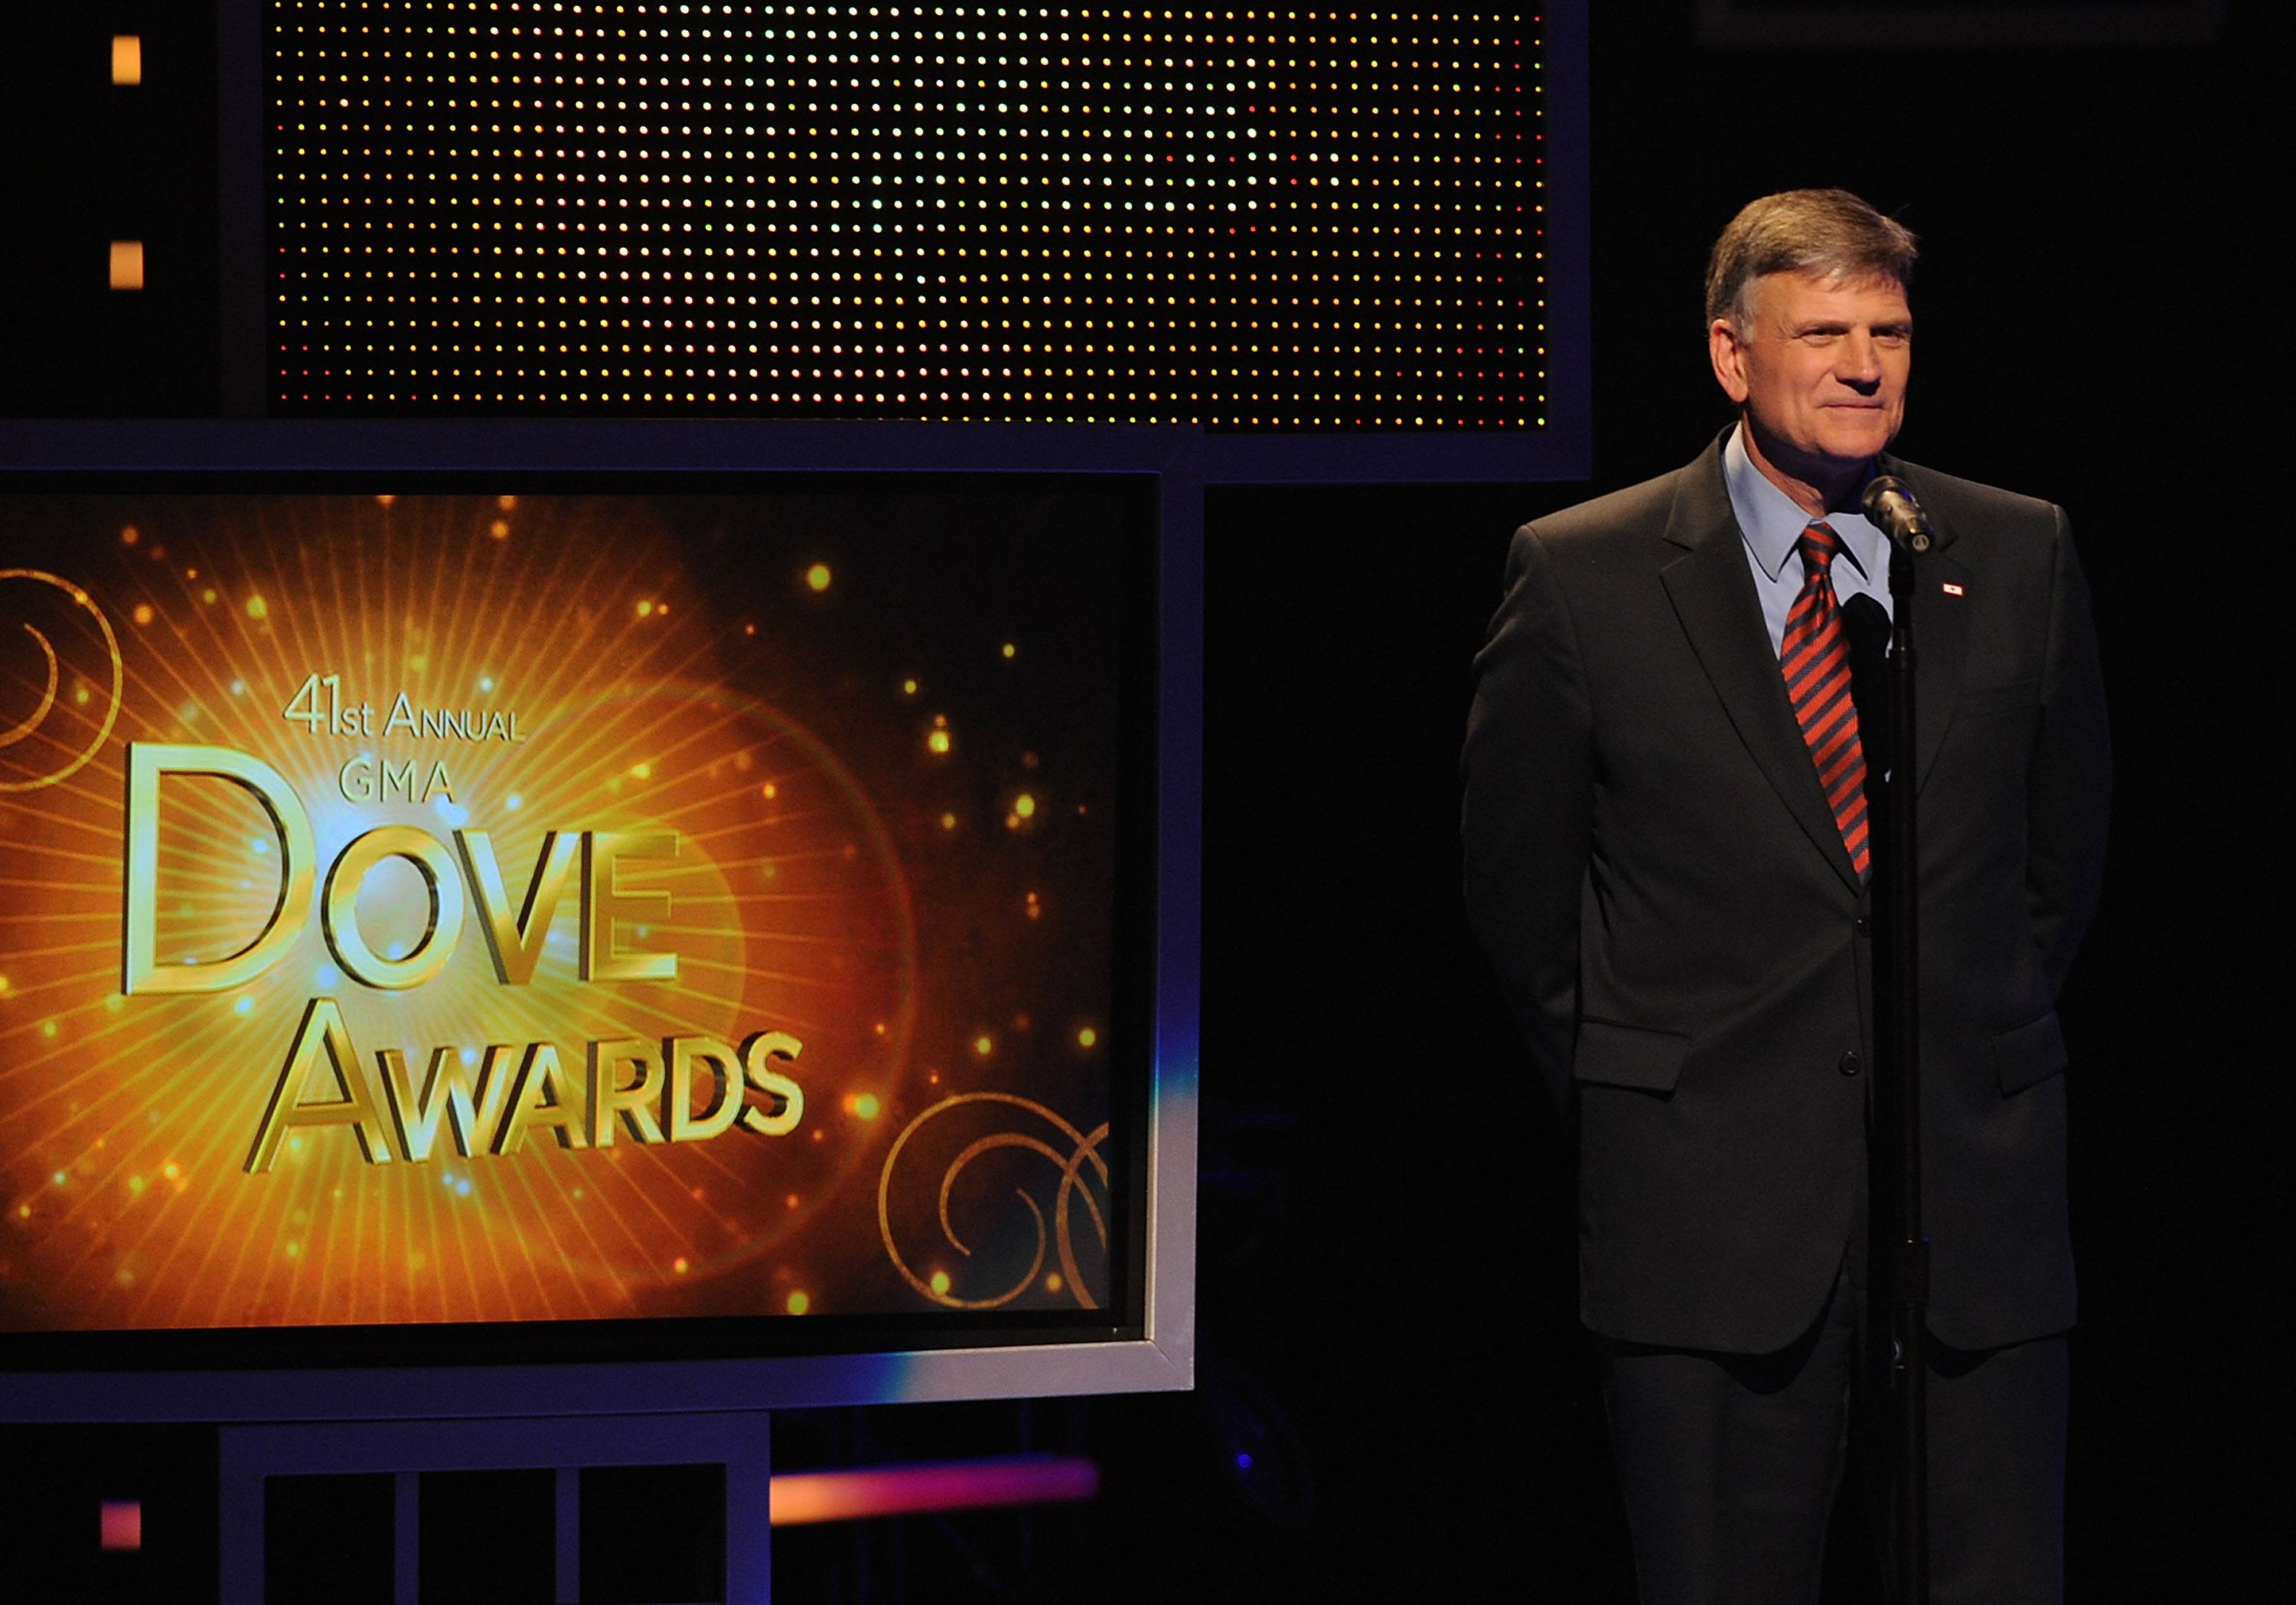 Franklin Graham speaks at Dove Awards